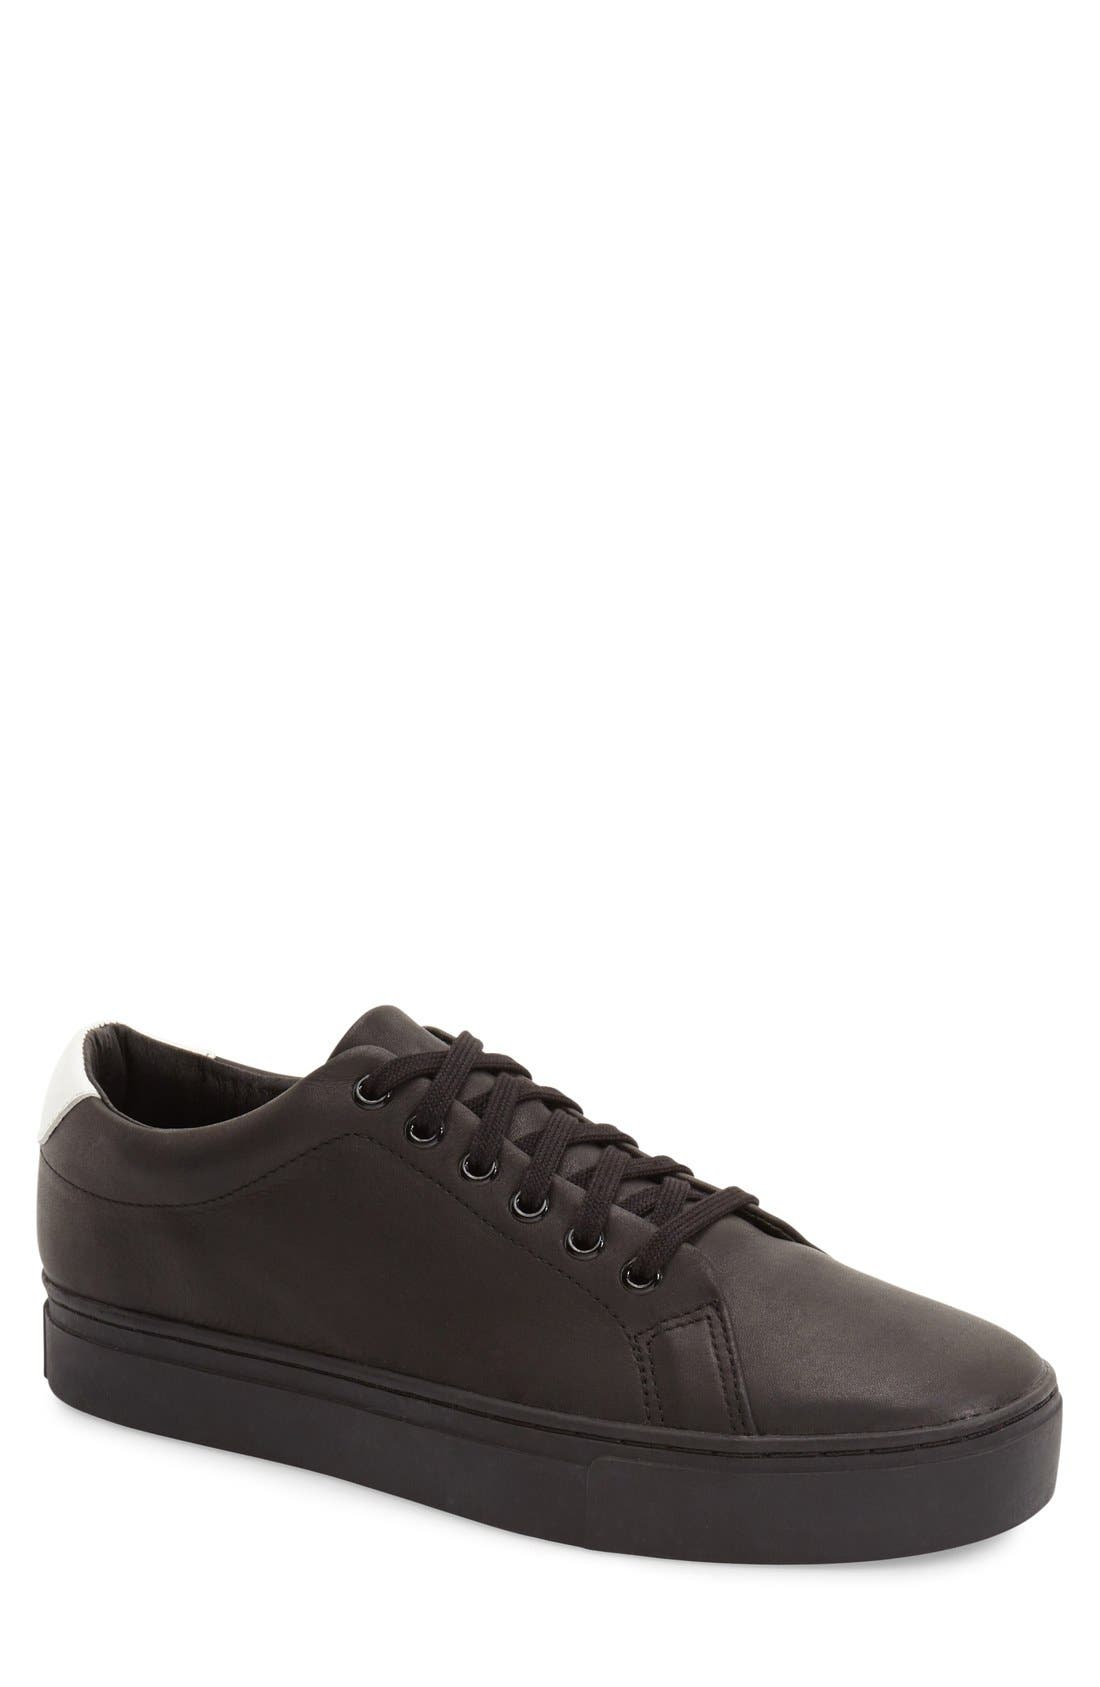 'Derek' Sneaker, Main, color, 001